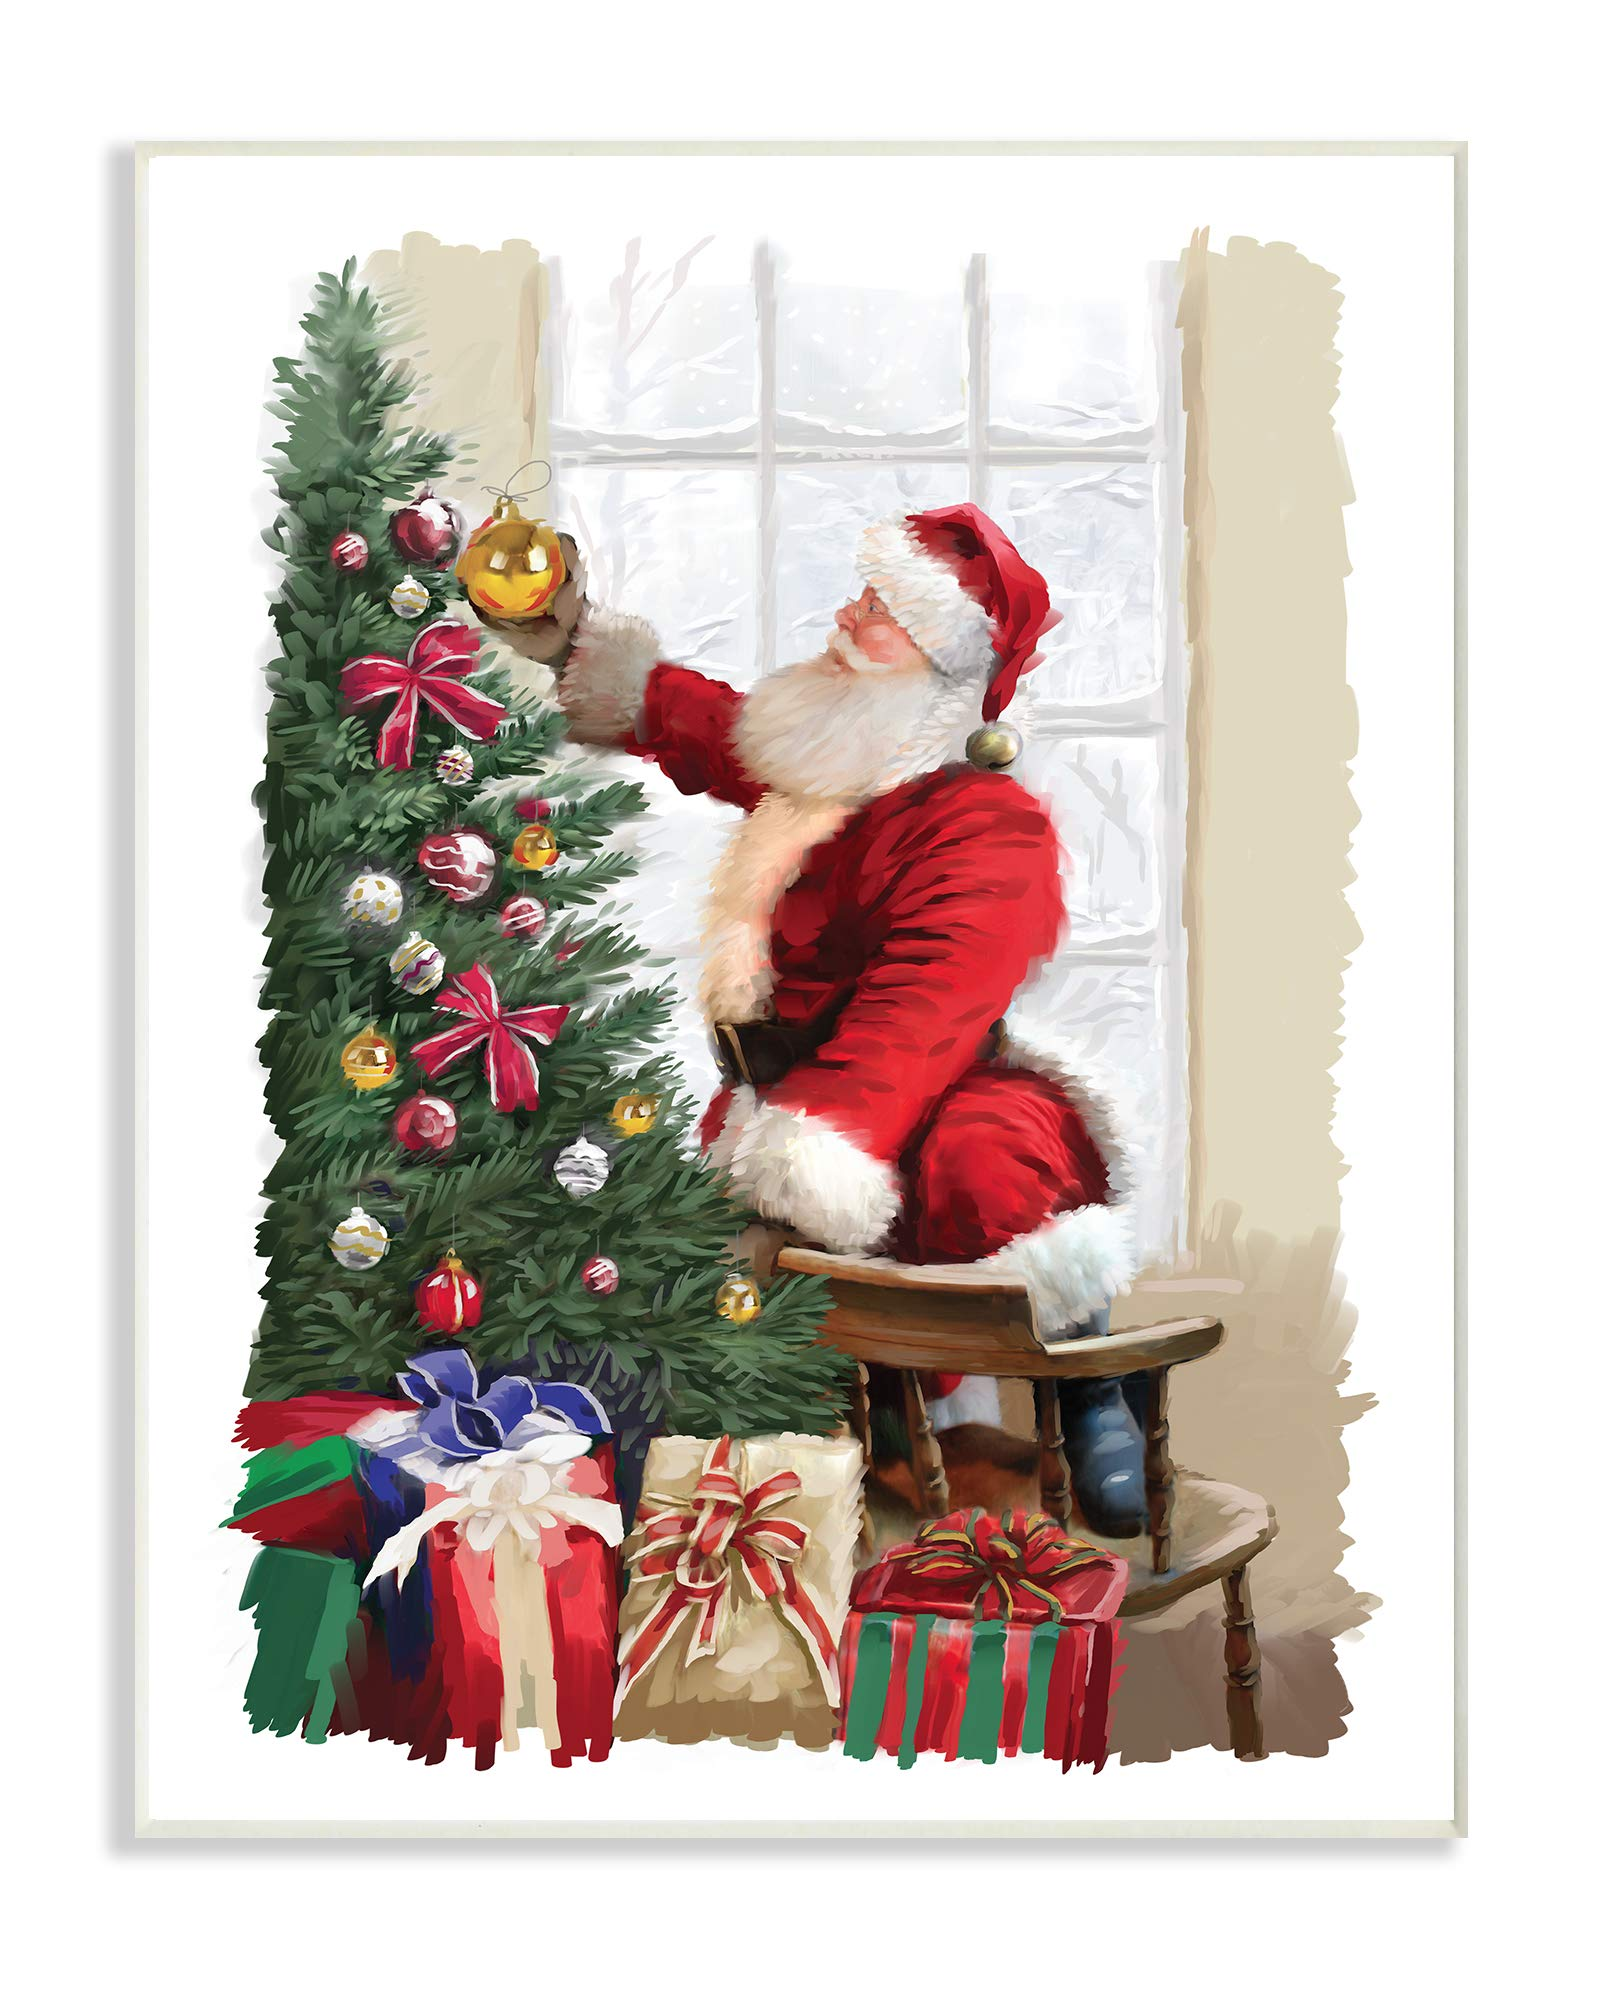 The Stupell Home Décor Collection Holiday Santa Decorating Christmas Tree with Gifts Painting Wall Plaque Art, Multi-Color